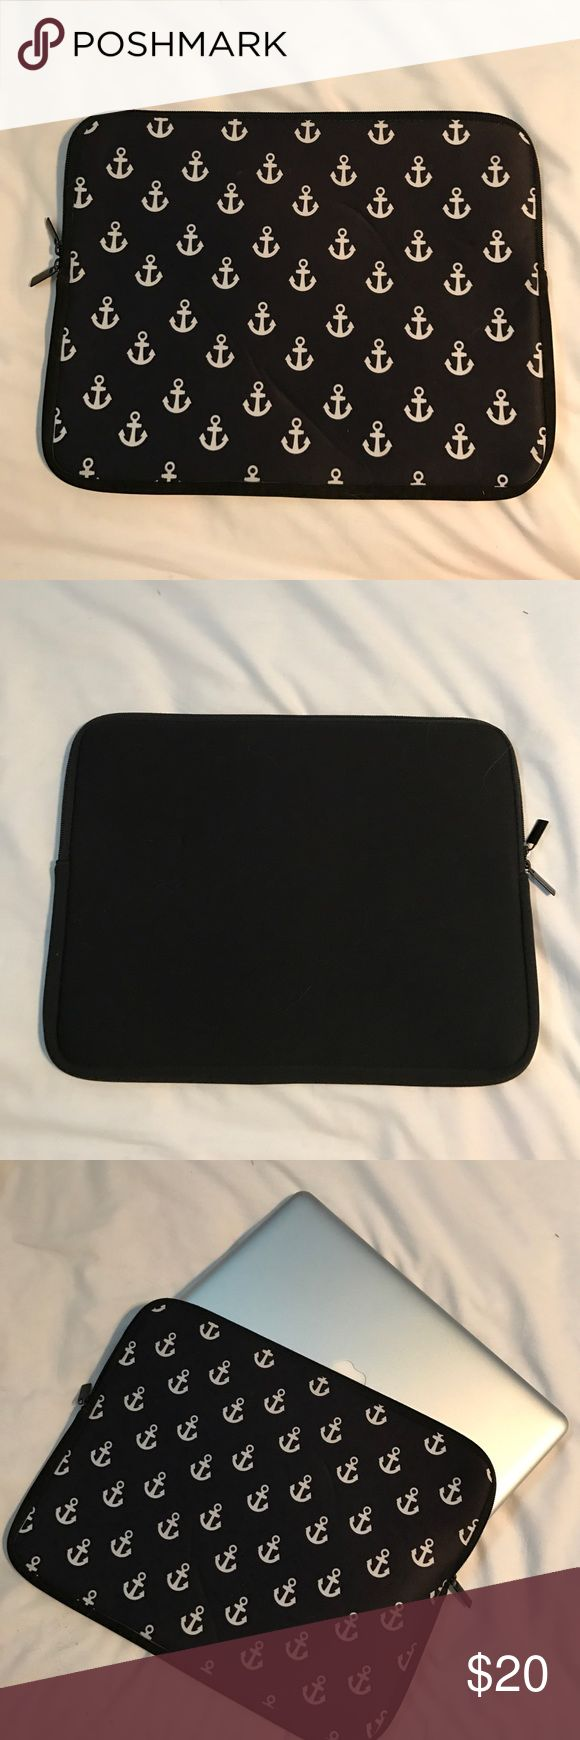 laptop case Anchor laptop case for a 13 inch Macbook Pro (or similar size laptop) ...in like new condition, received as a gift and just never used it...FOR SALE ONLY, not interested in trades sorry! Bags Laptop Bags